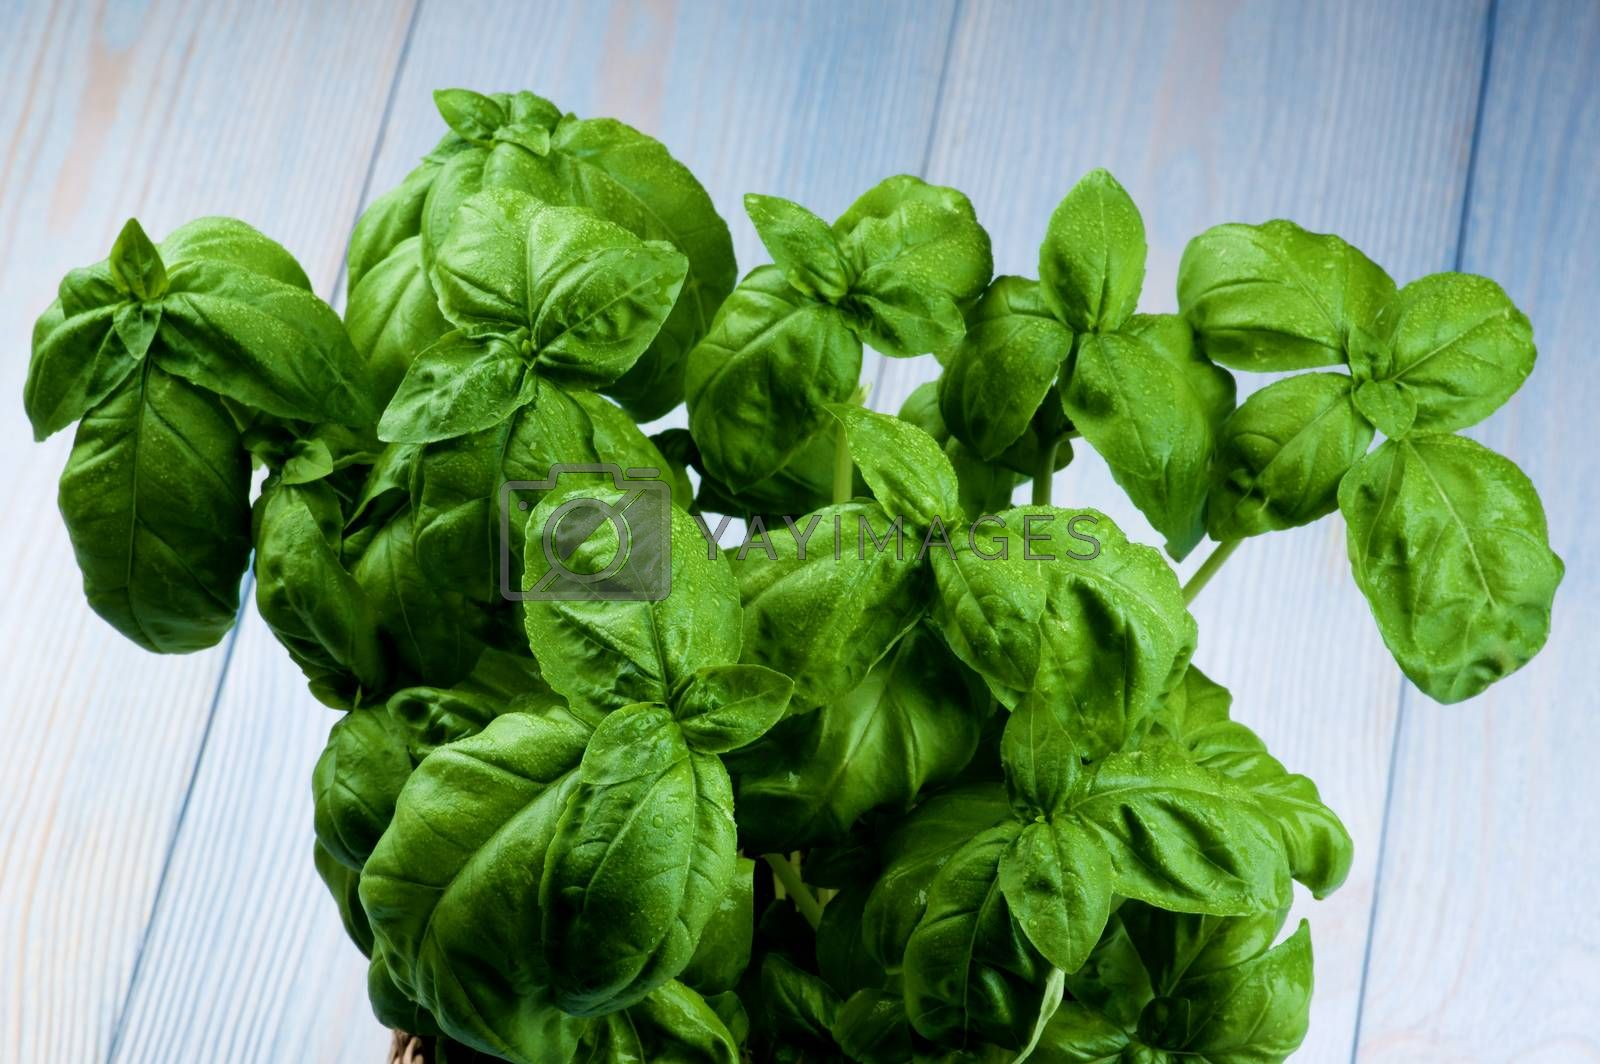 Bunch of Perfect Lush Foliage Fresh Green Basil with Water Drops closeup on Blue Wooden background